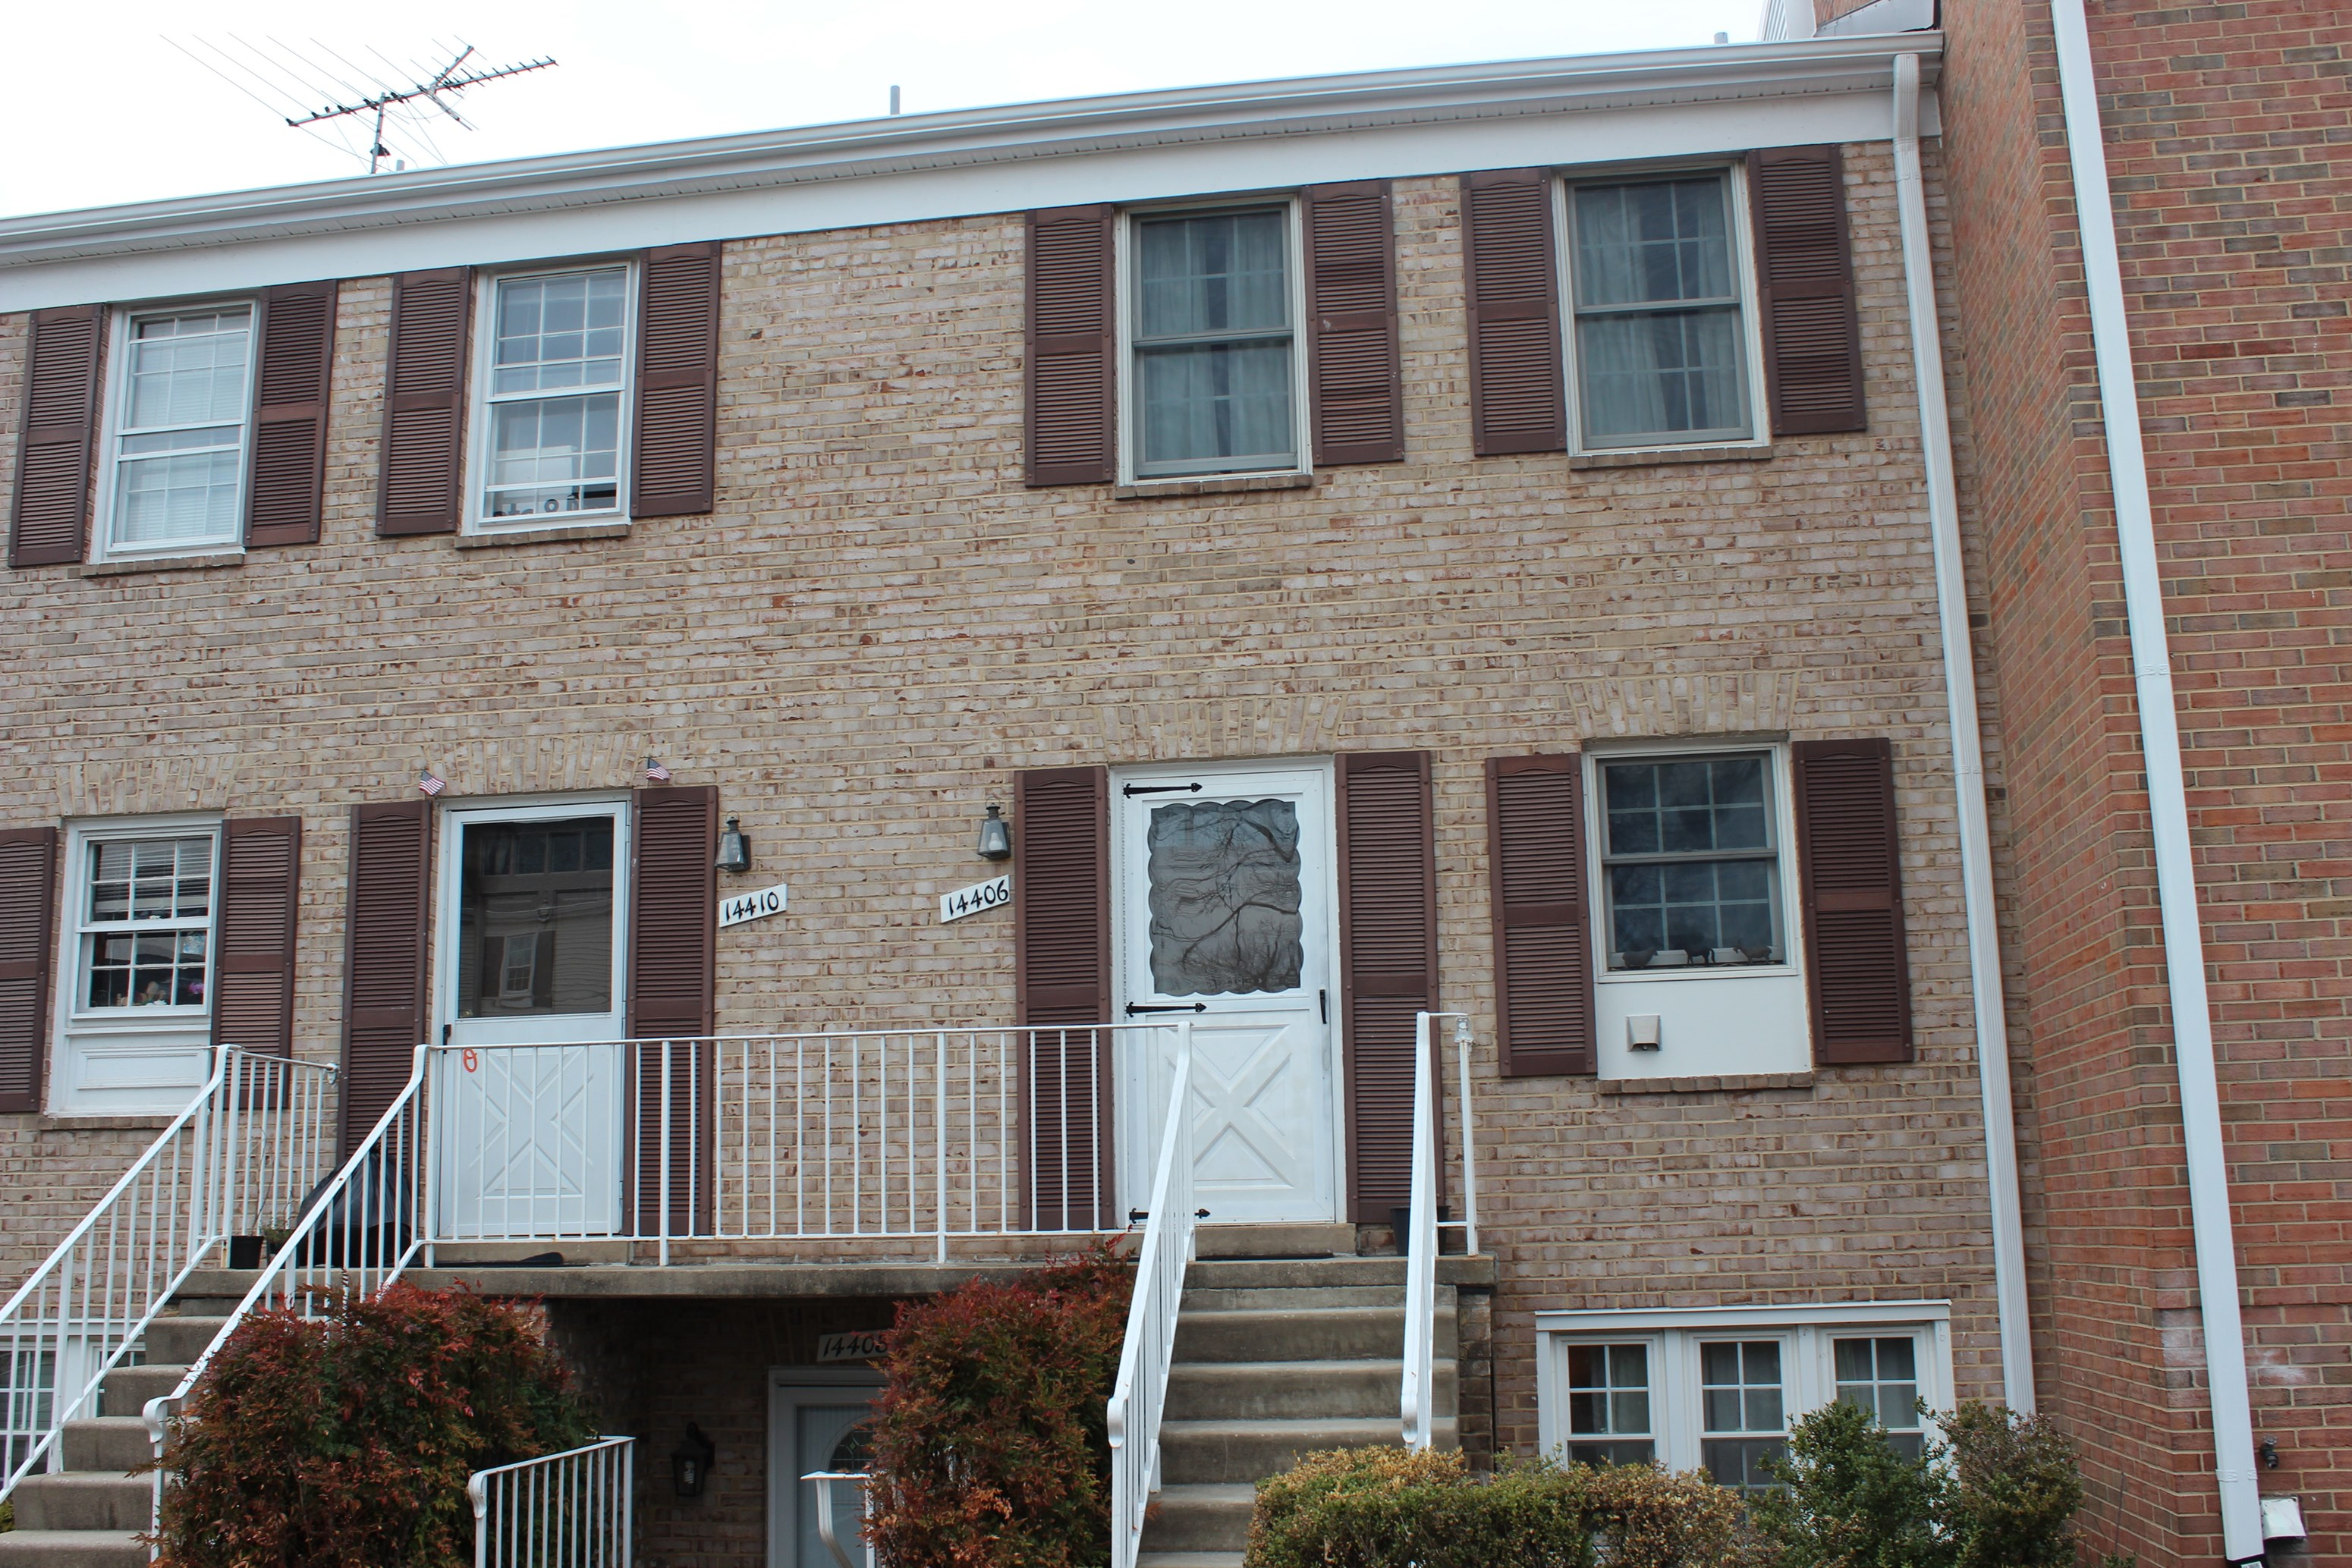 Townhome for rent centreville fairfax county va 2 for 2 bedroom apartments in fairfax va